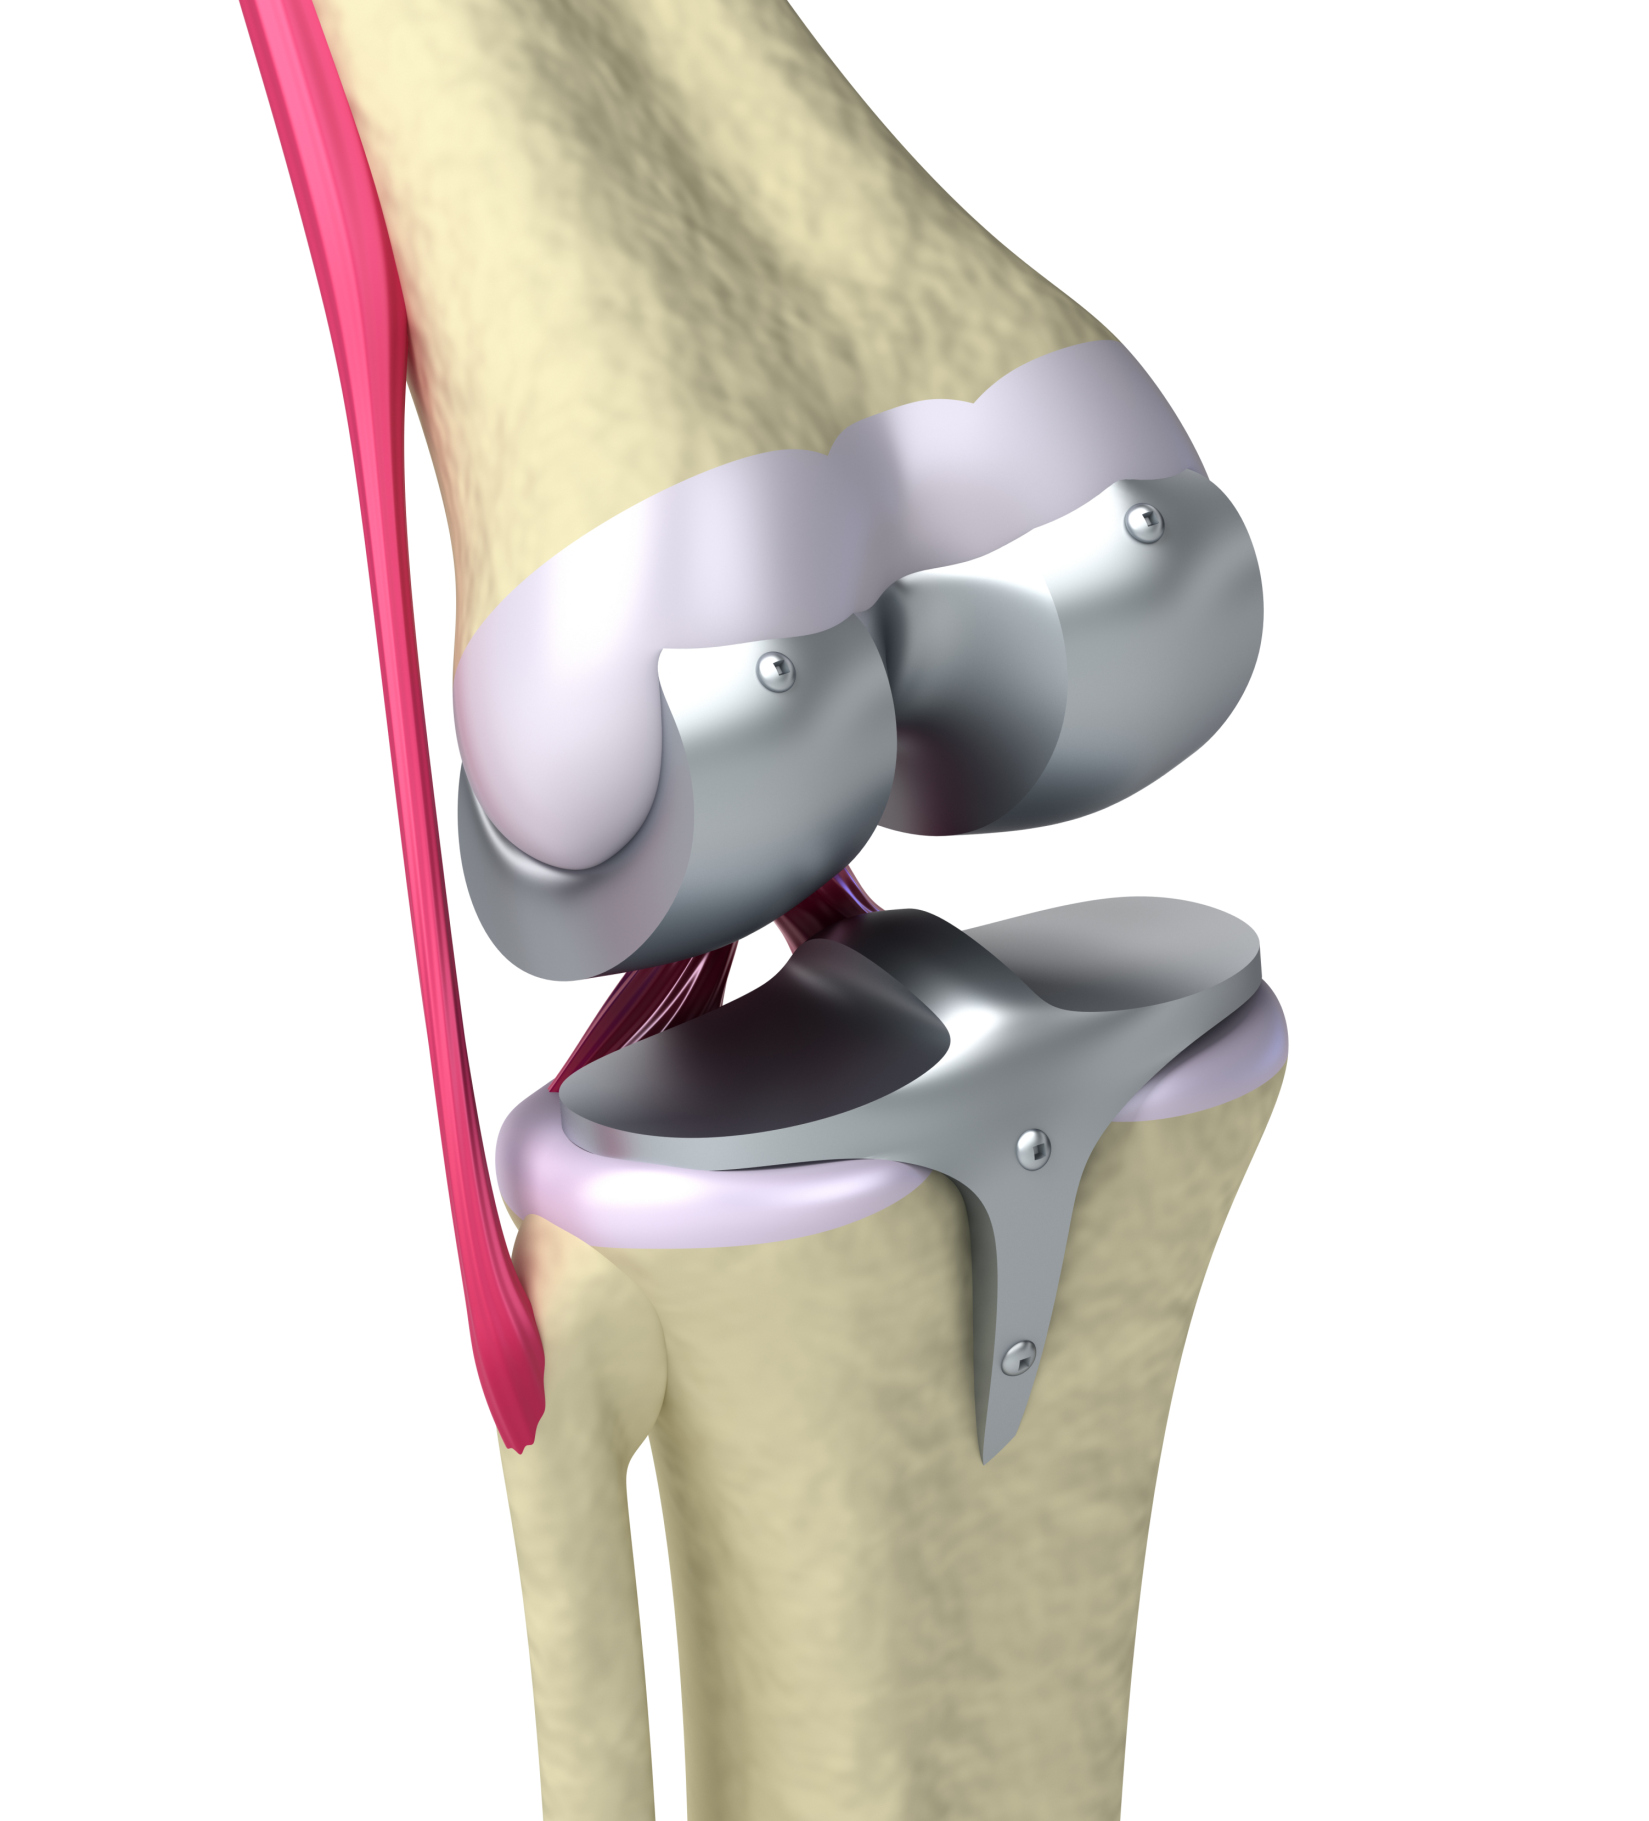 Knee and titanium hinge joint